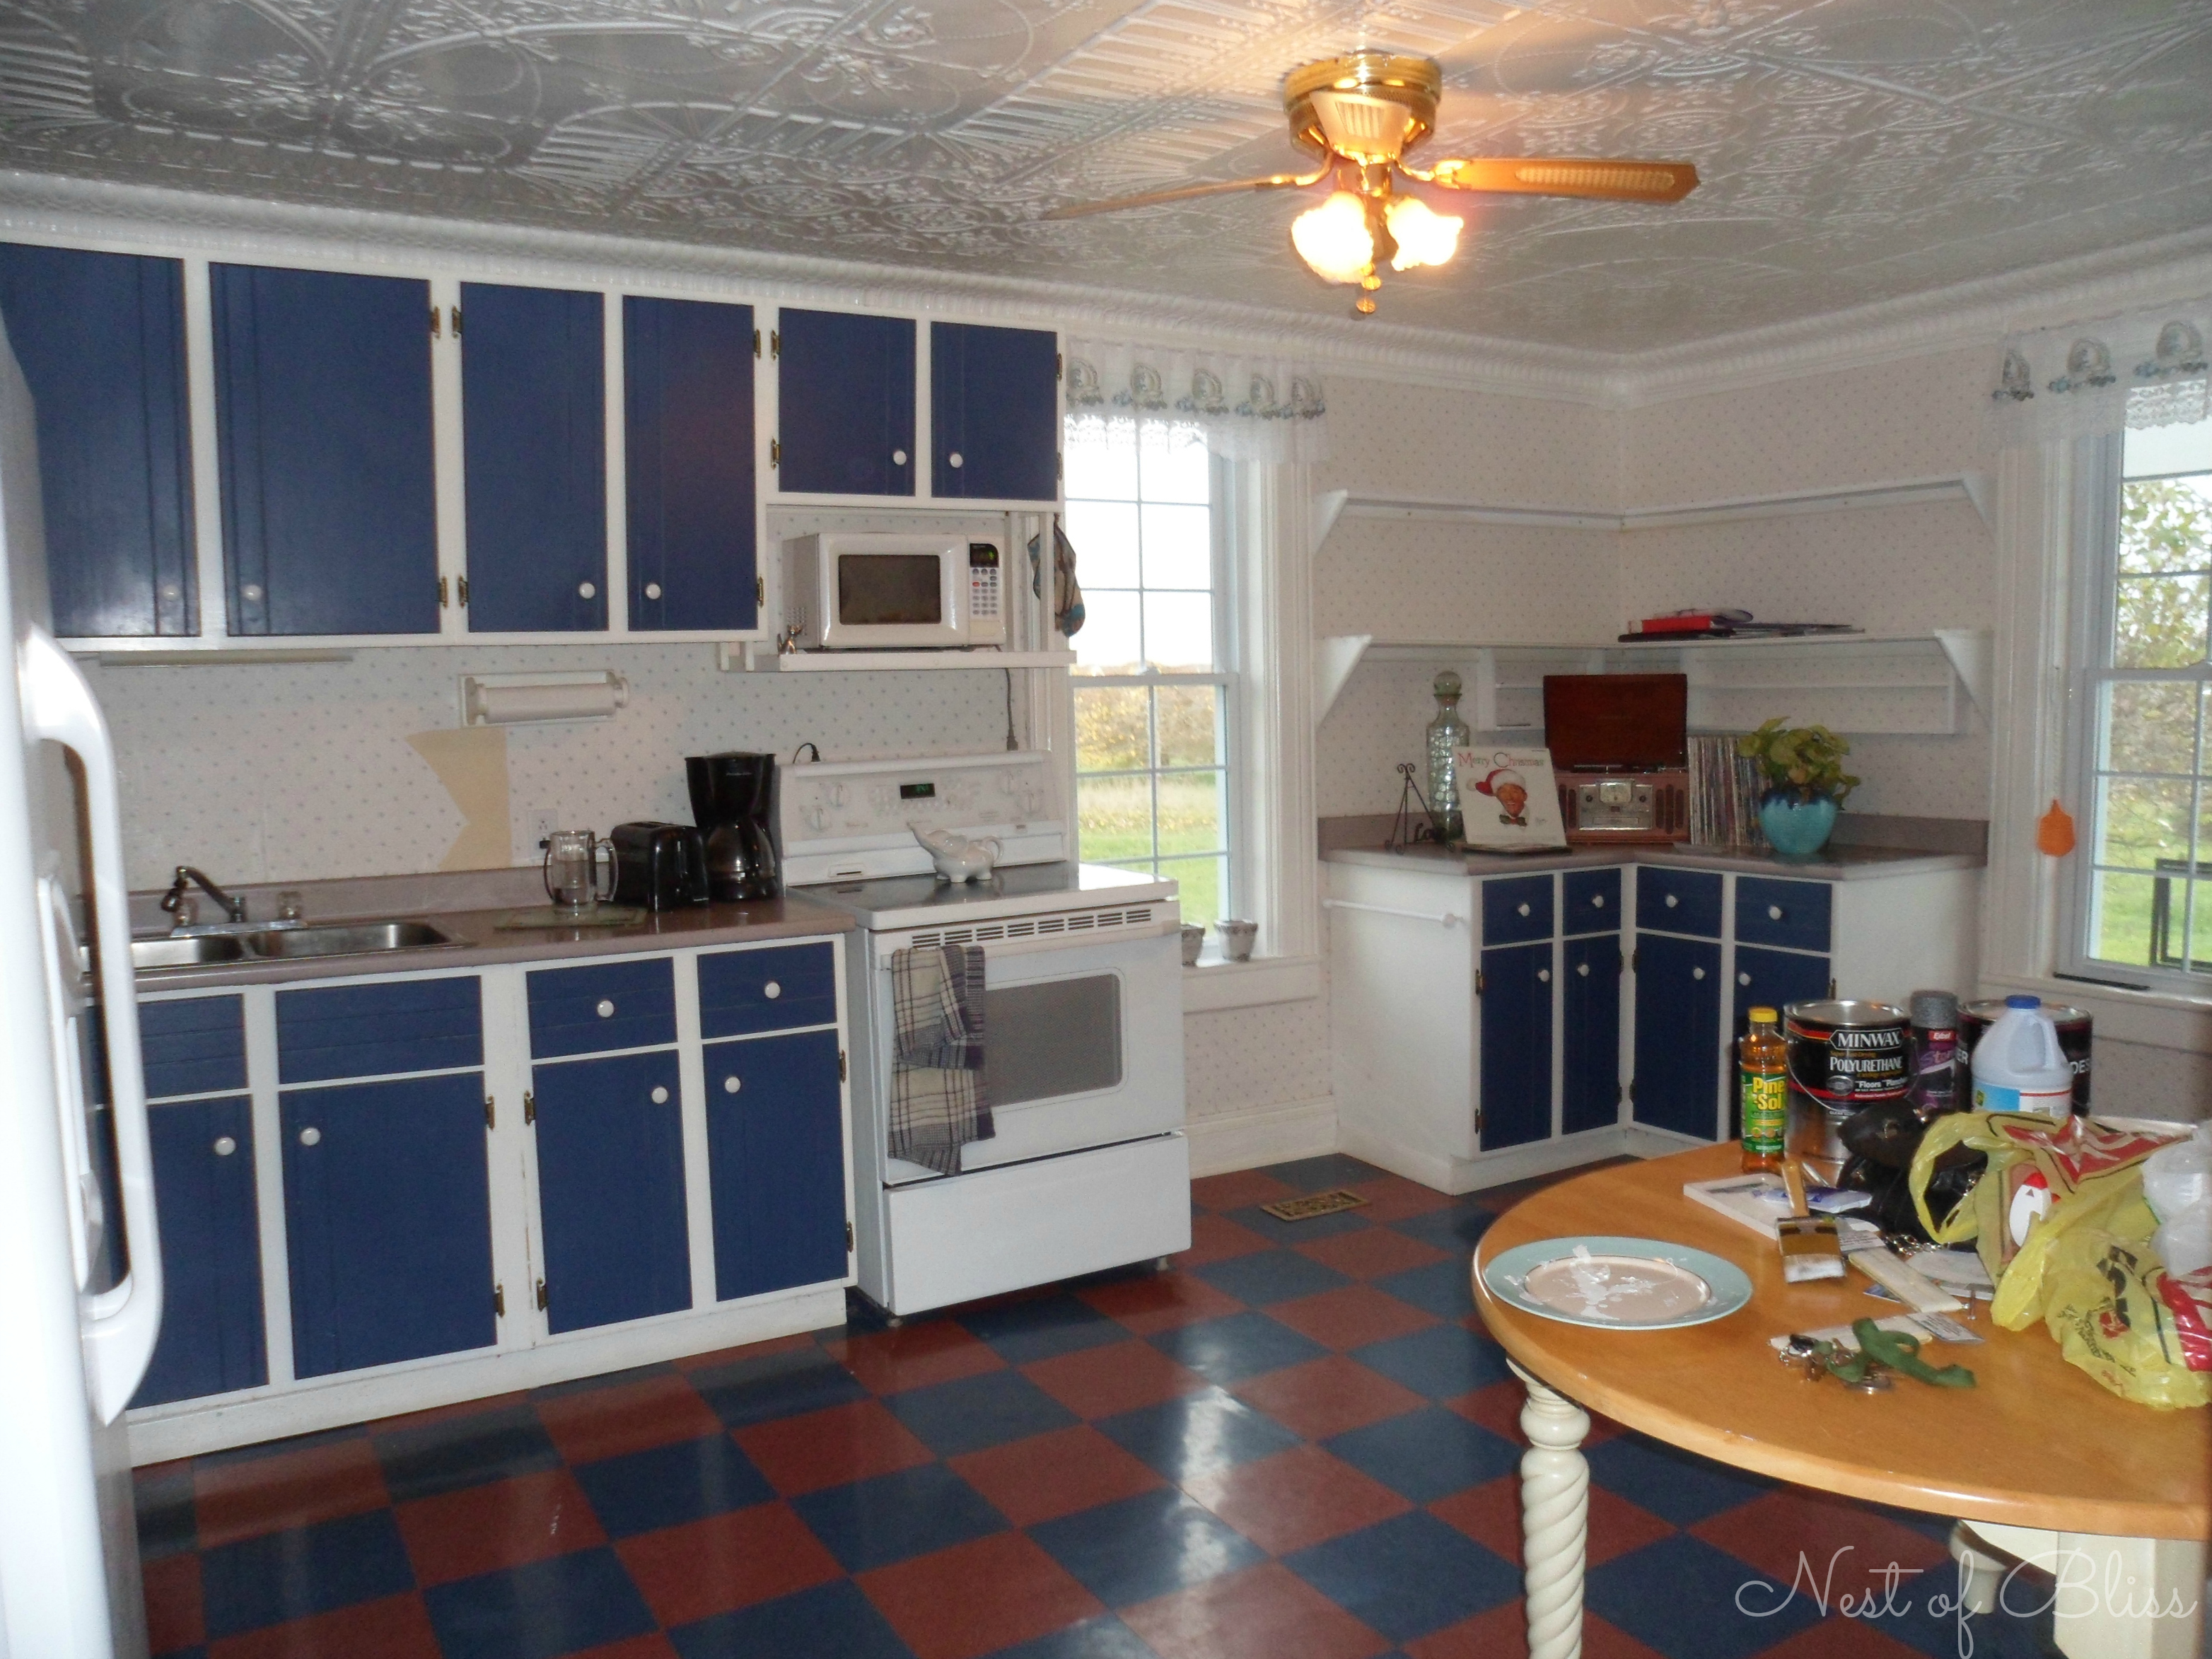 Even after removing the dated wallpaper, garish blue paint on the cabinets and a bold checkered floor detracted from the kitchen's gracious size and lovely tin ceiling.